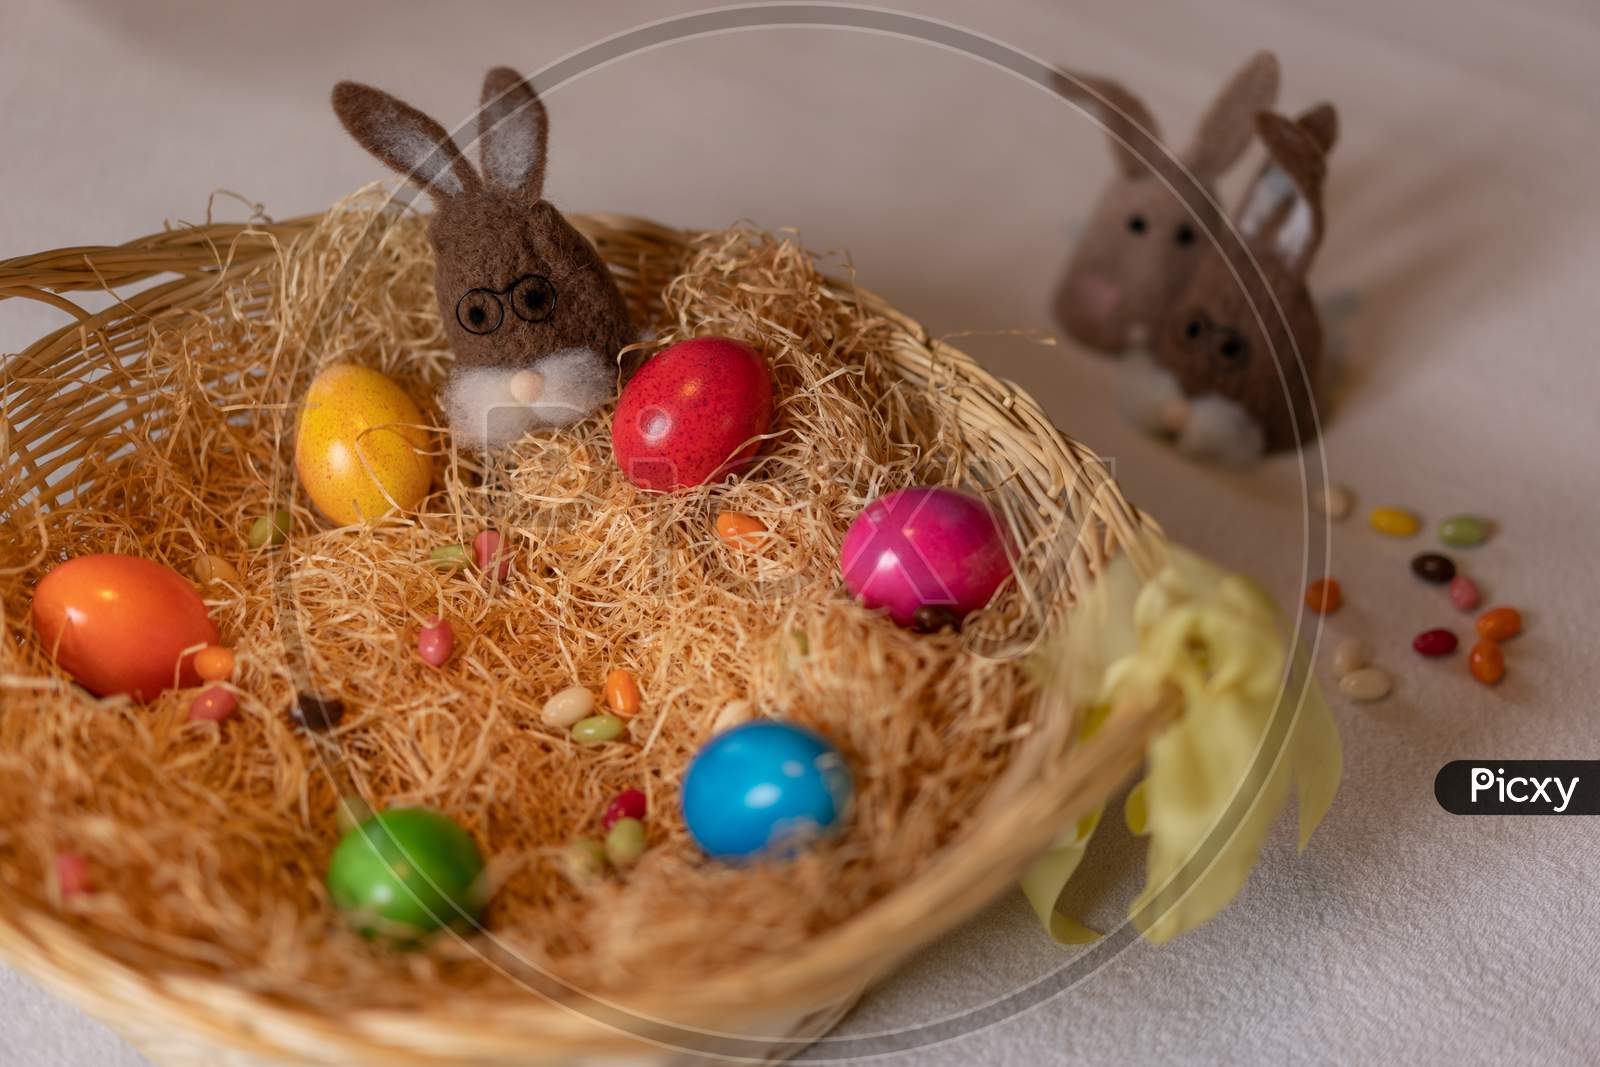 Colored Easter Eggs And One Brown Felt Bunnies In And Two Separated Other Out Of The Nest Of Straw With Colorful Sweet Sugar Eggs.